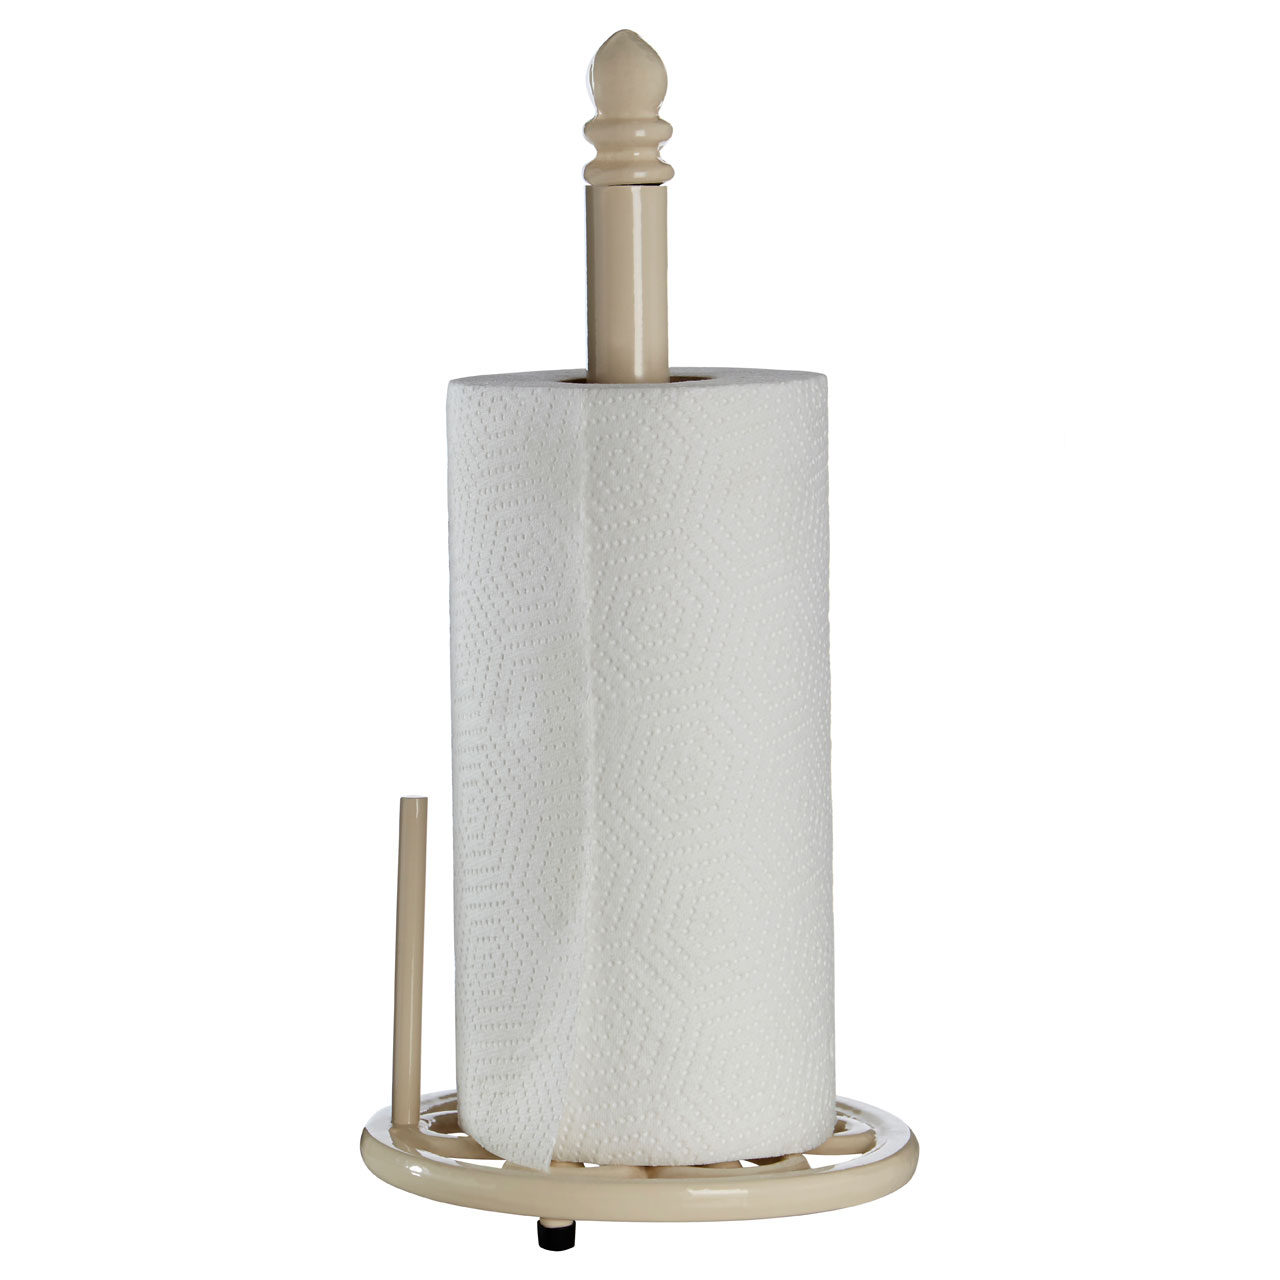 Premier Cream Cast Iron Kitchen Roll Holder Retro Tissue Paper Towel ...